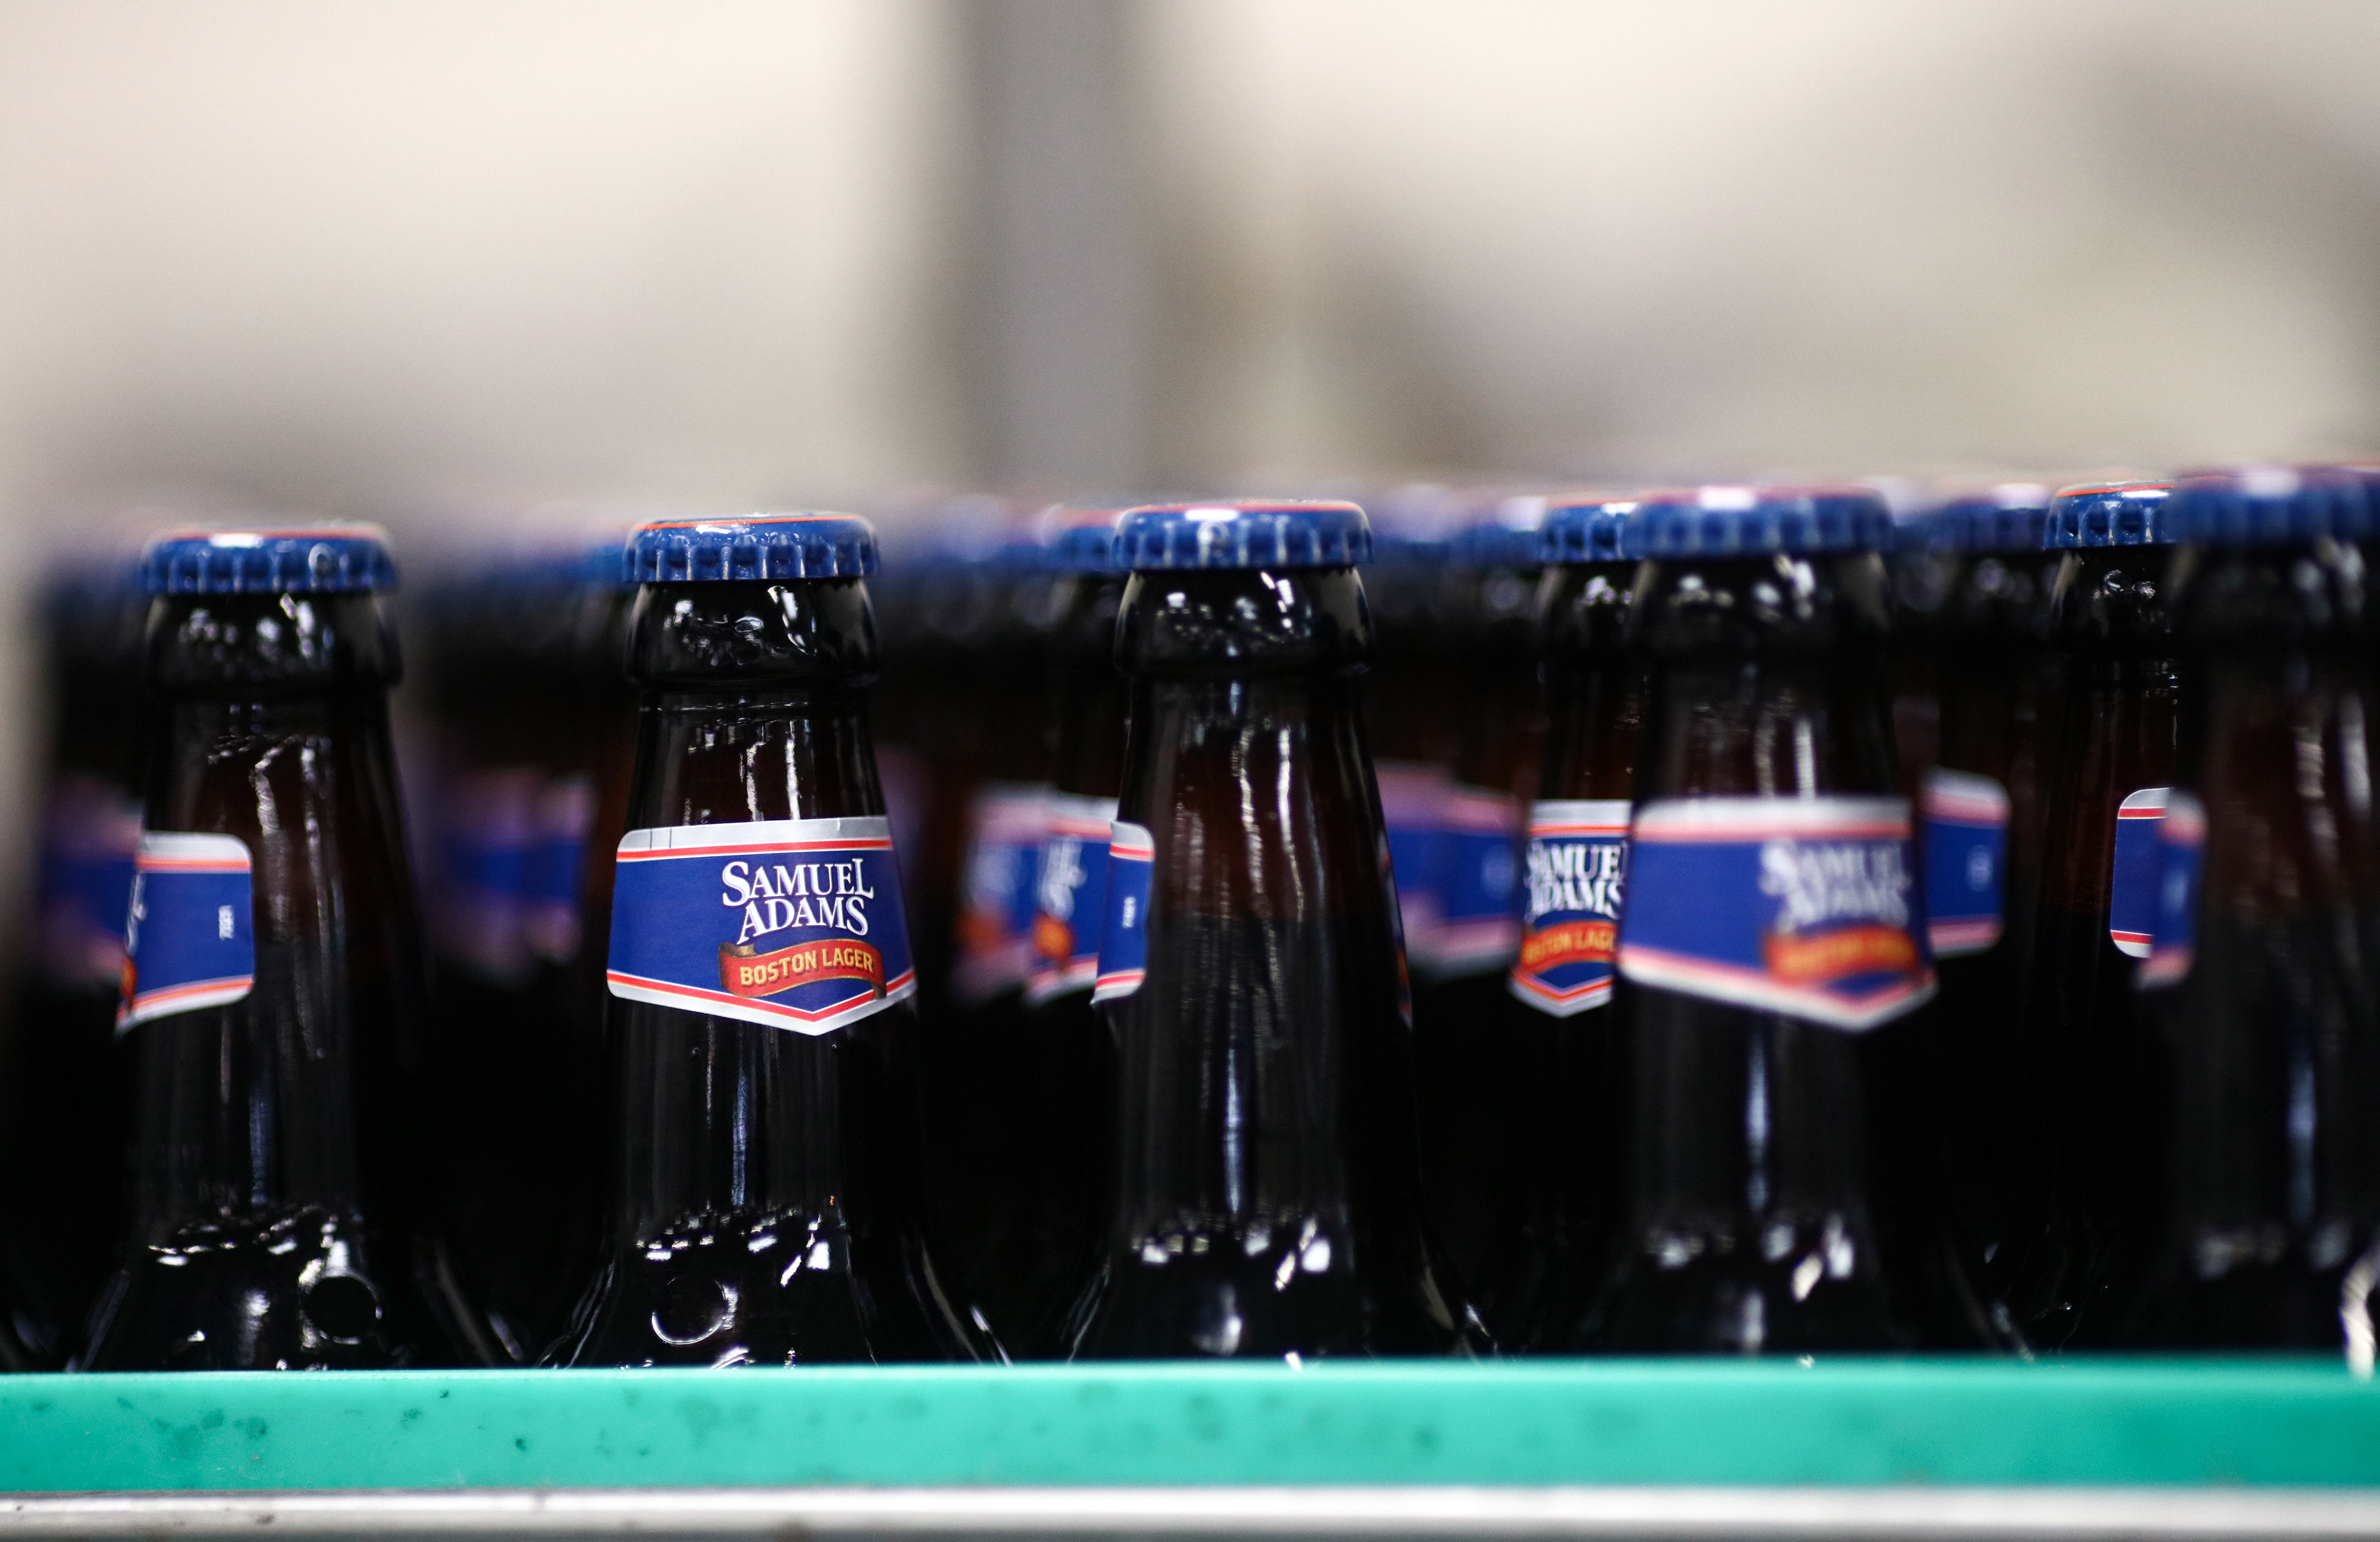 Samuel Adams Boston Lager On The Production Line At Shepherd Neame Plc Brewery